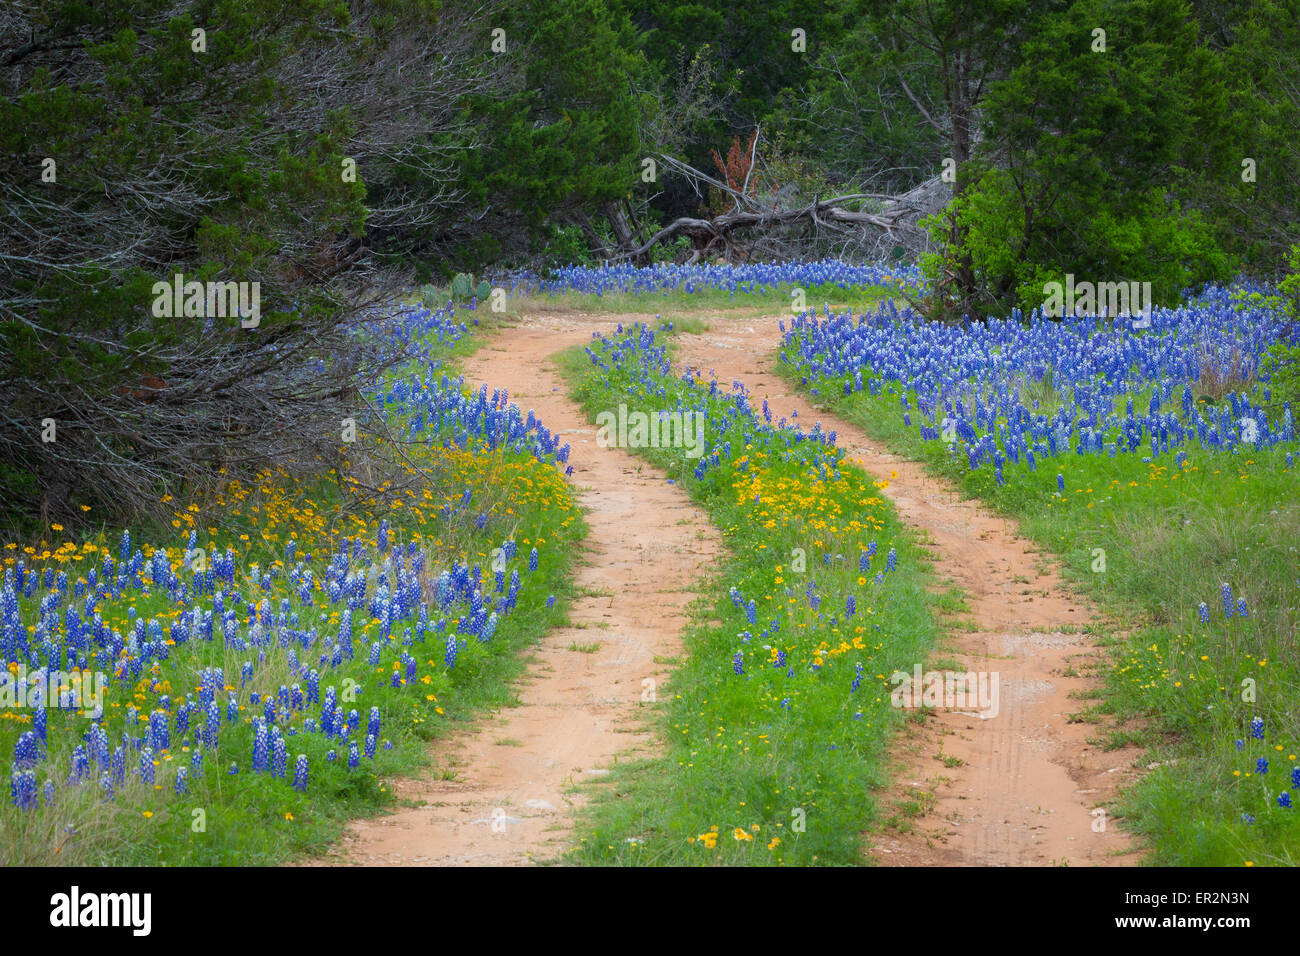 Country road in the Texas Hill Country east of Llano, Texas, line by bluebonnets - Stock Image